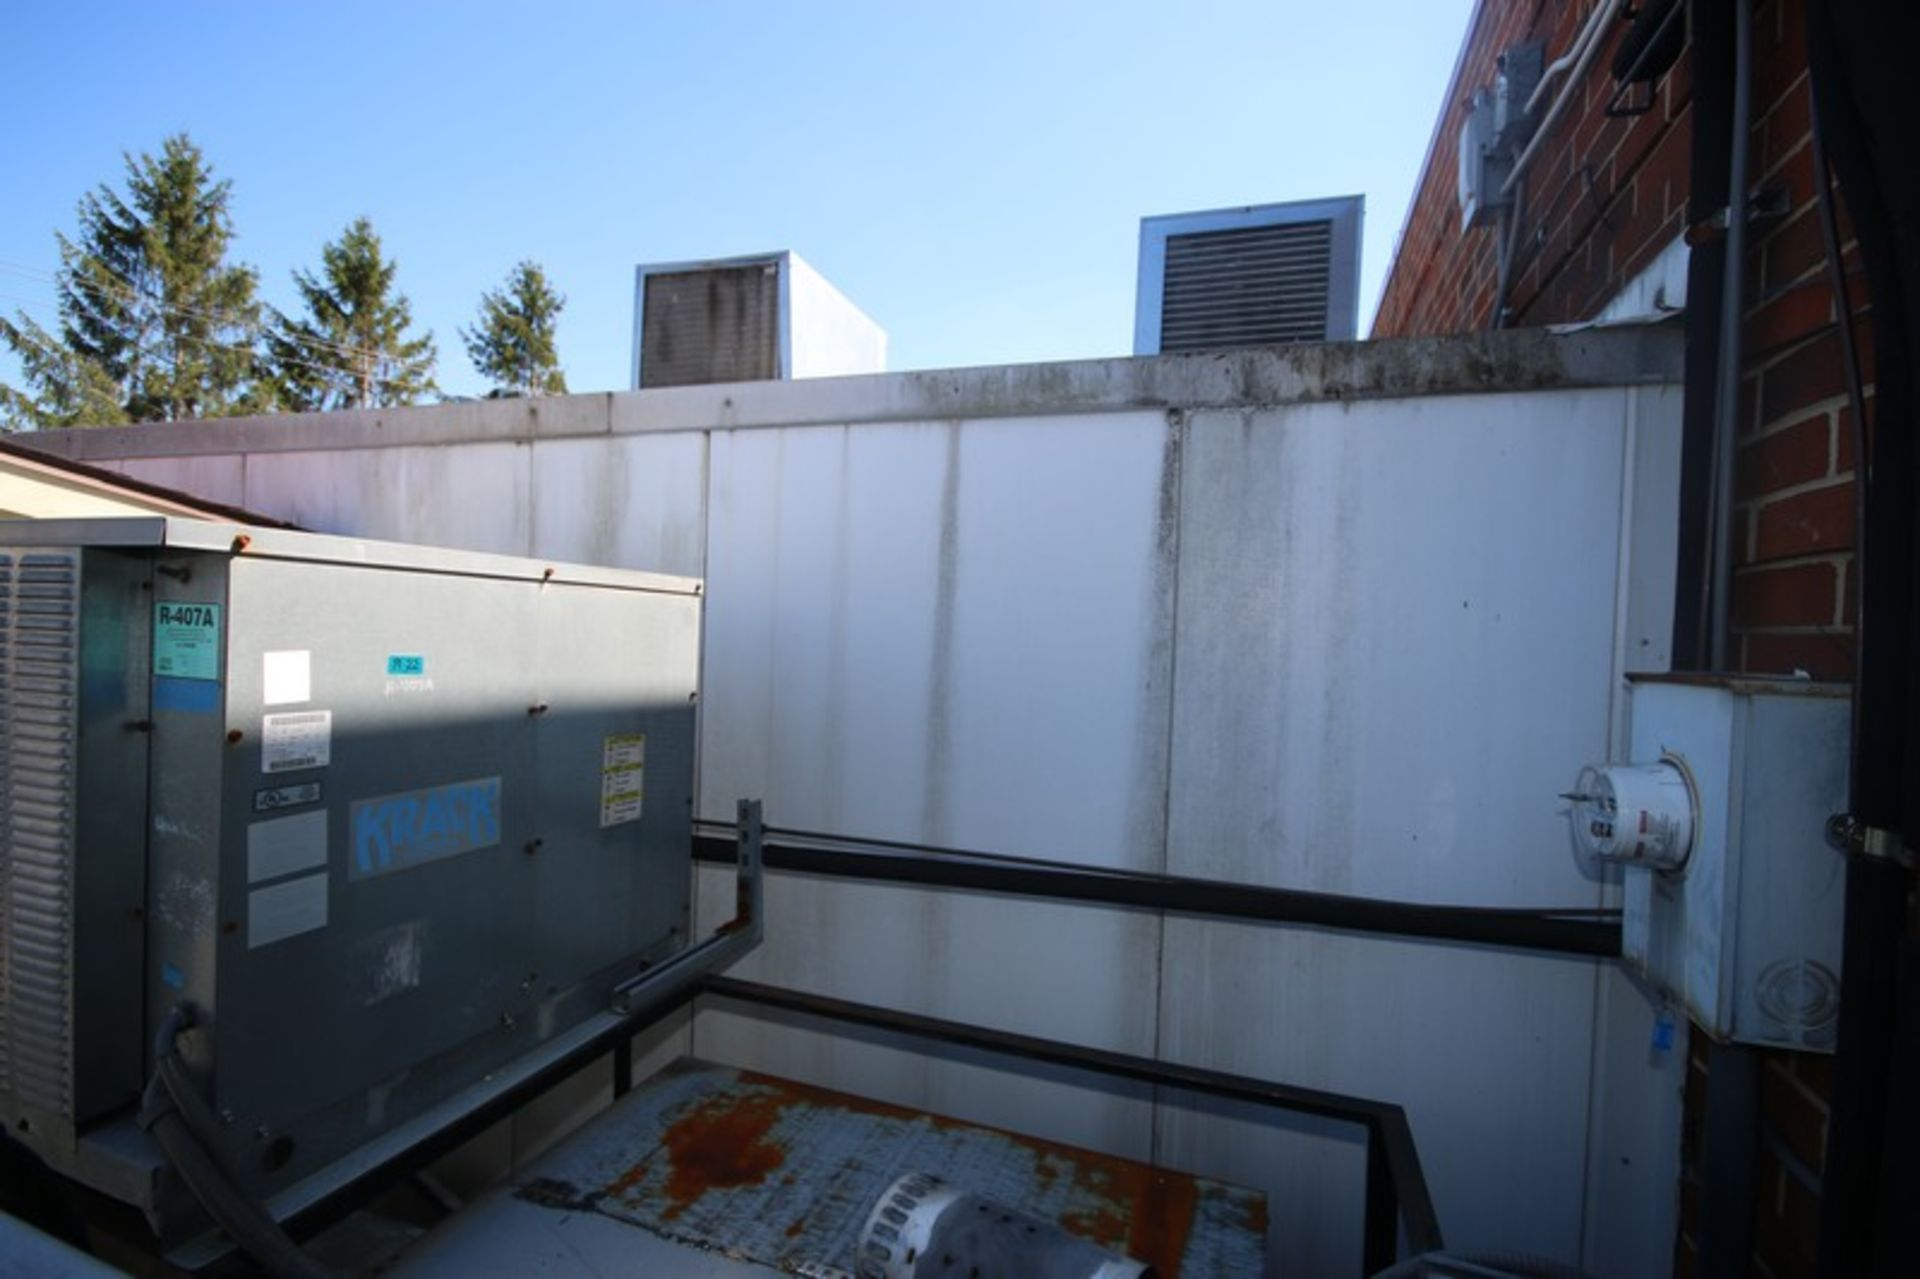 Harford Dual Compartment Walk-In Cooler & Freezer, M/N DR36788W5H8D, S/N XW703D9, Compartment Sizes: - Image 4 of 16